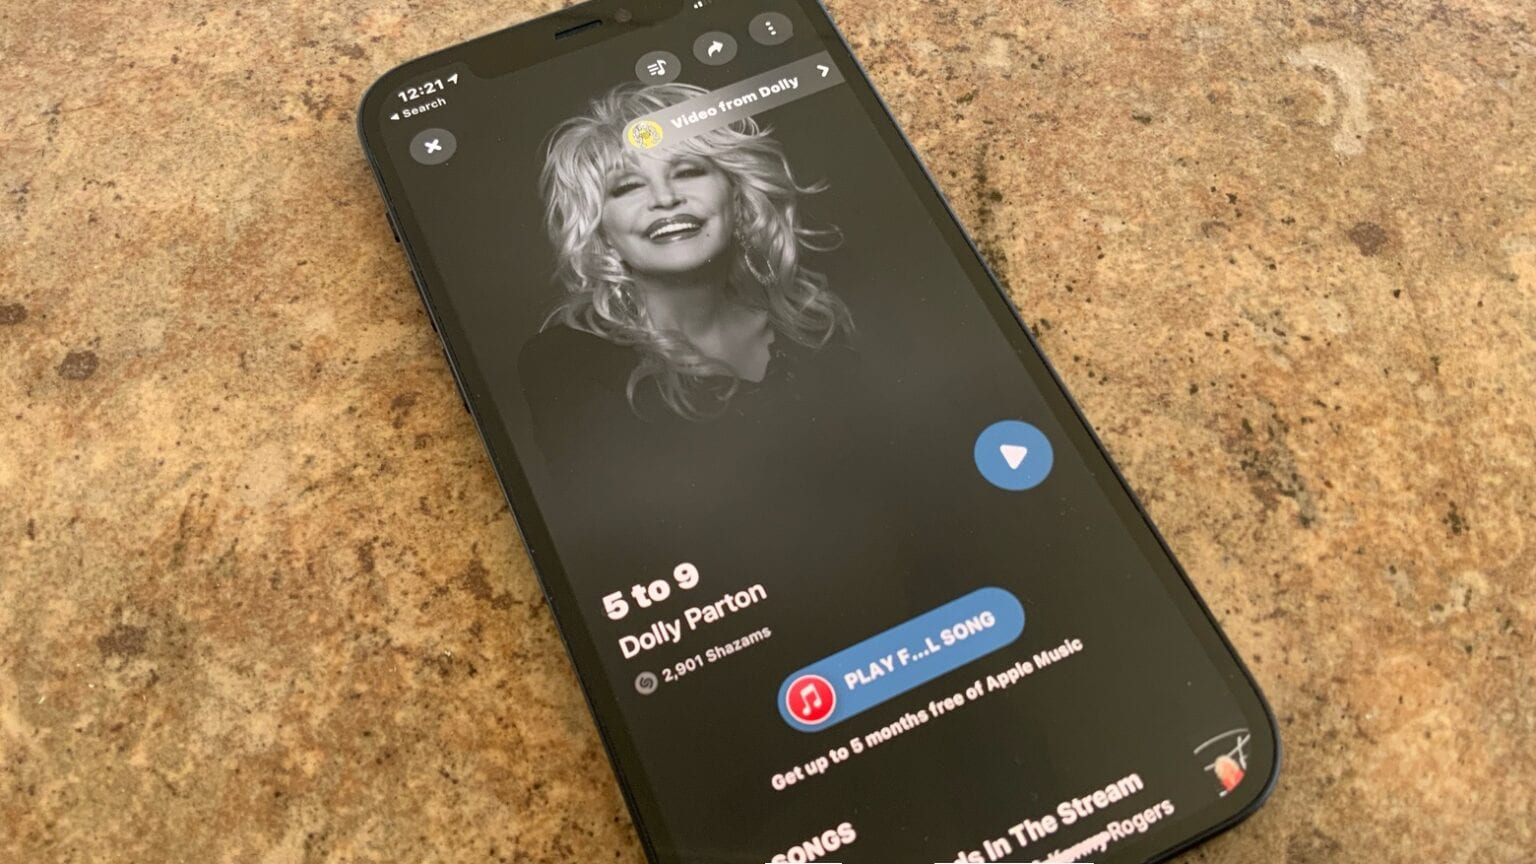 Listen to Dolly Parton in '5 to 9' for 5 free months of Apple Music.